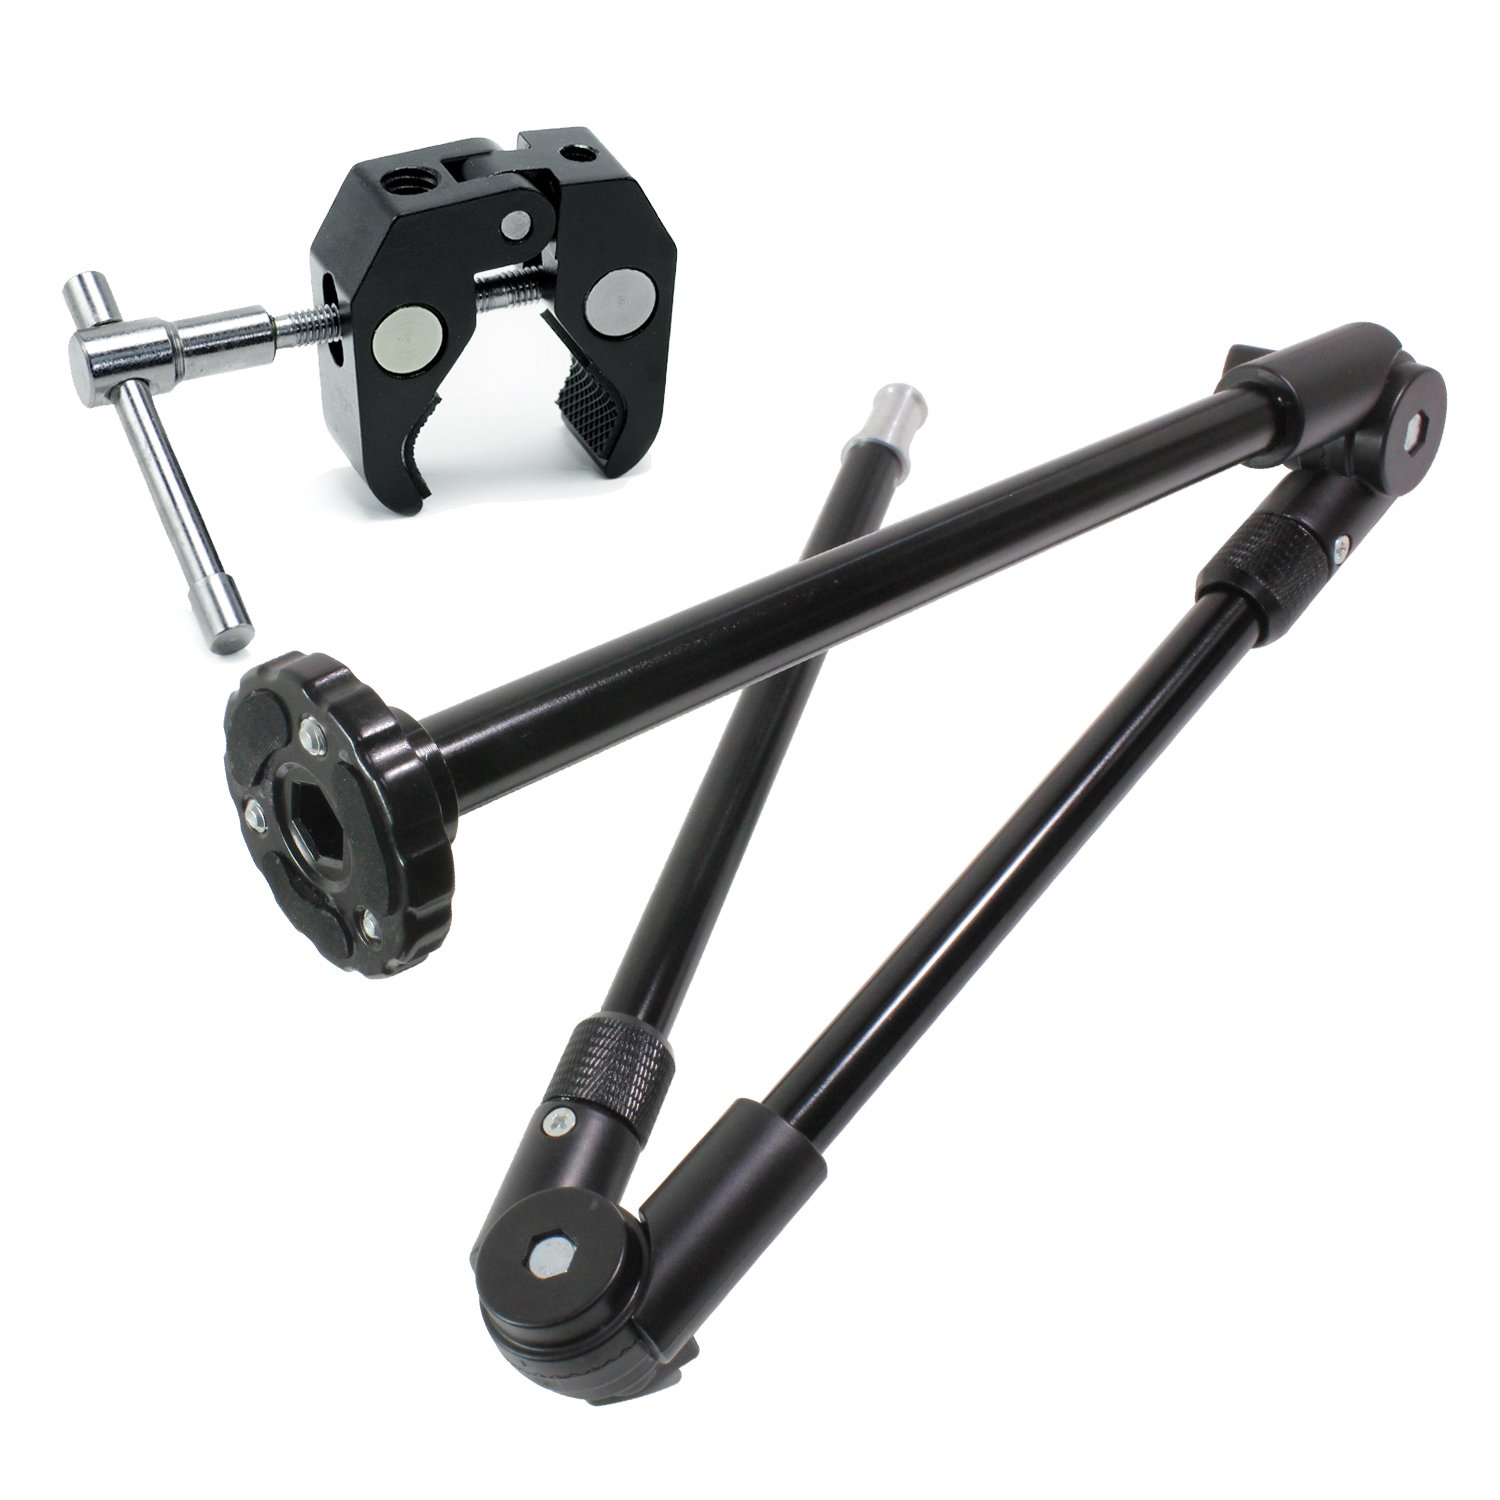 LS Photography 3 Section Single Articulated Arm Camera Mount Bracket with 5/8'' & 1/4'' Stud and Super Clamp with 1/4'' & 3/8'' Threads, Photo Video Light Stand Support, LGG707 by Lsphotography